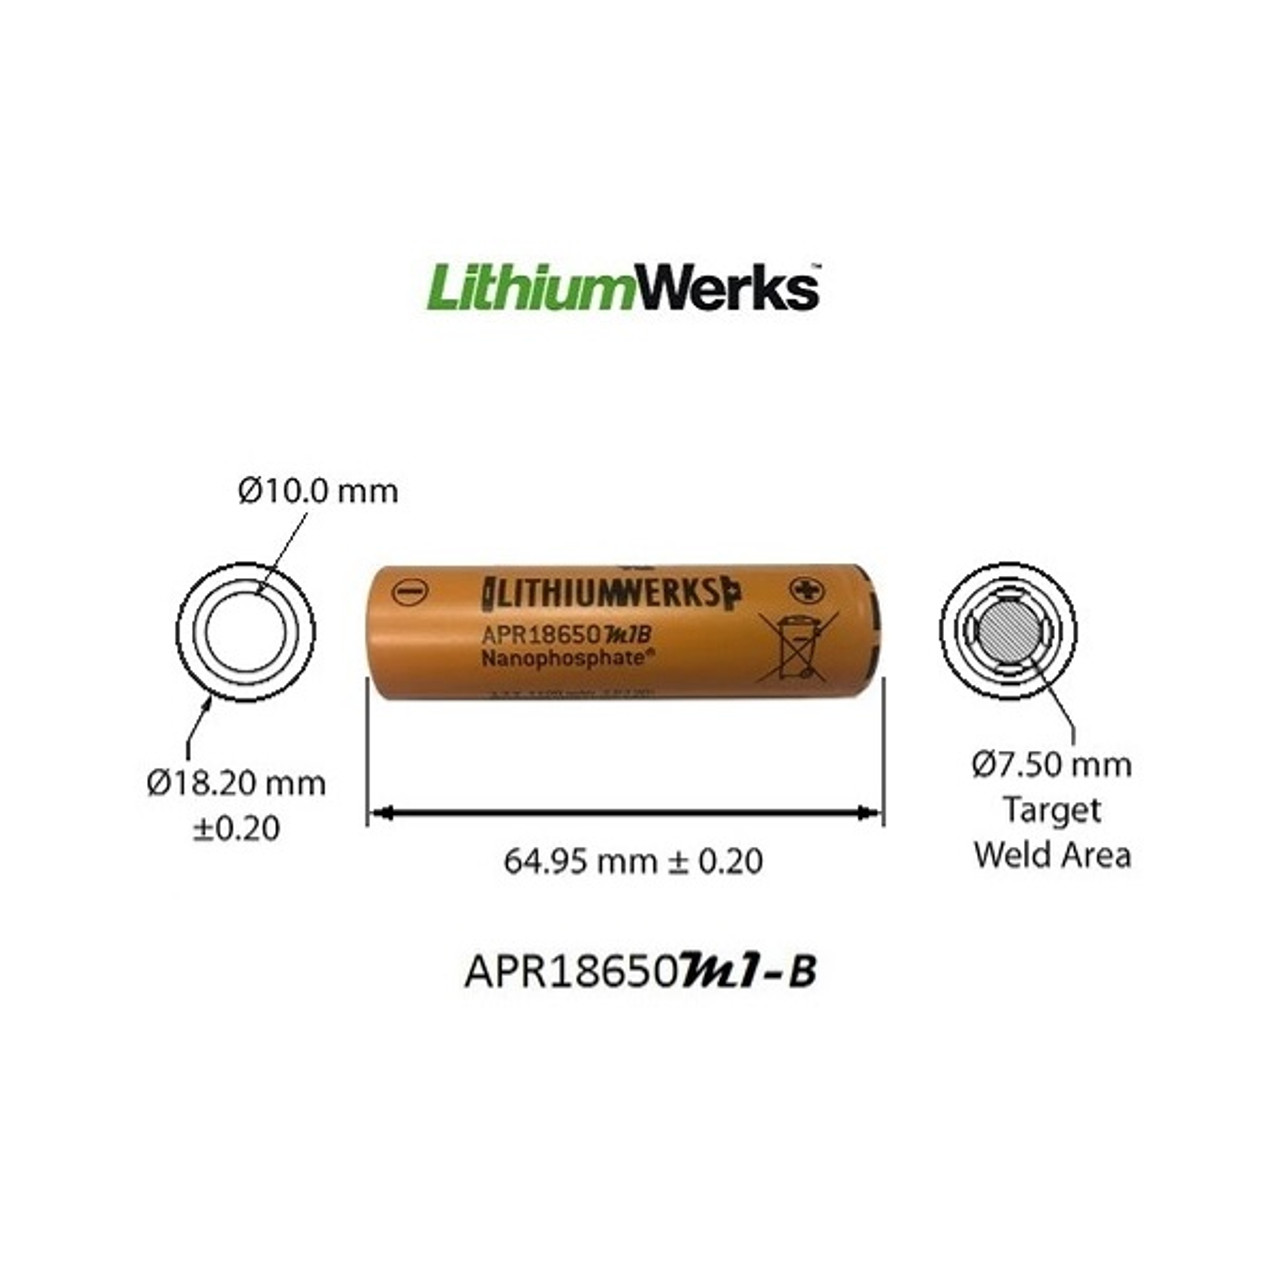 APR18650M1-B, Li-Ion NanoPhosphate® Technology - Dimensions